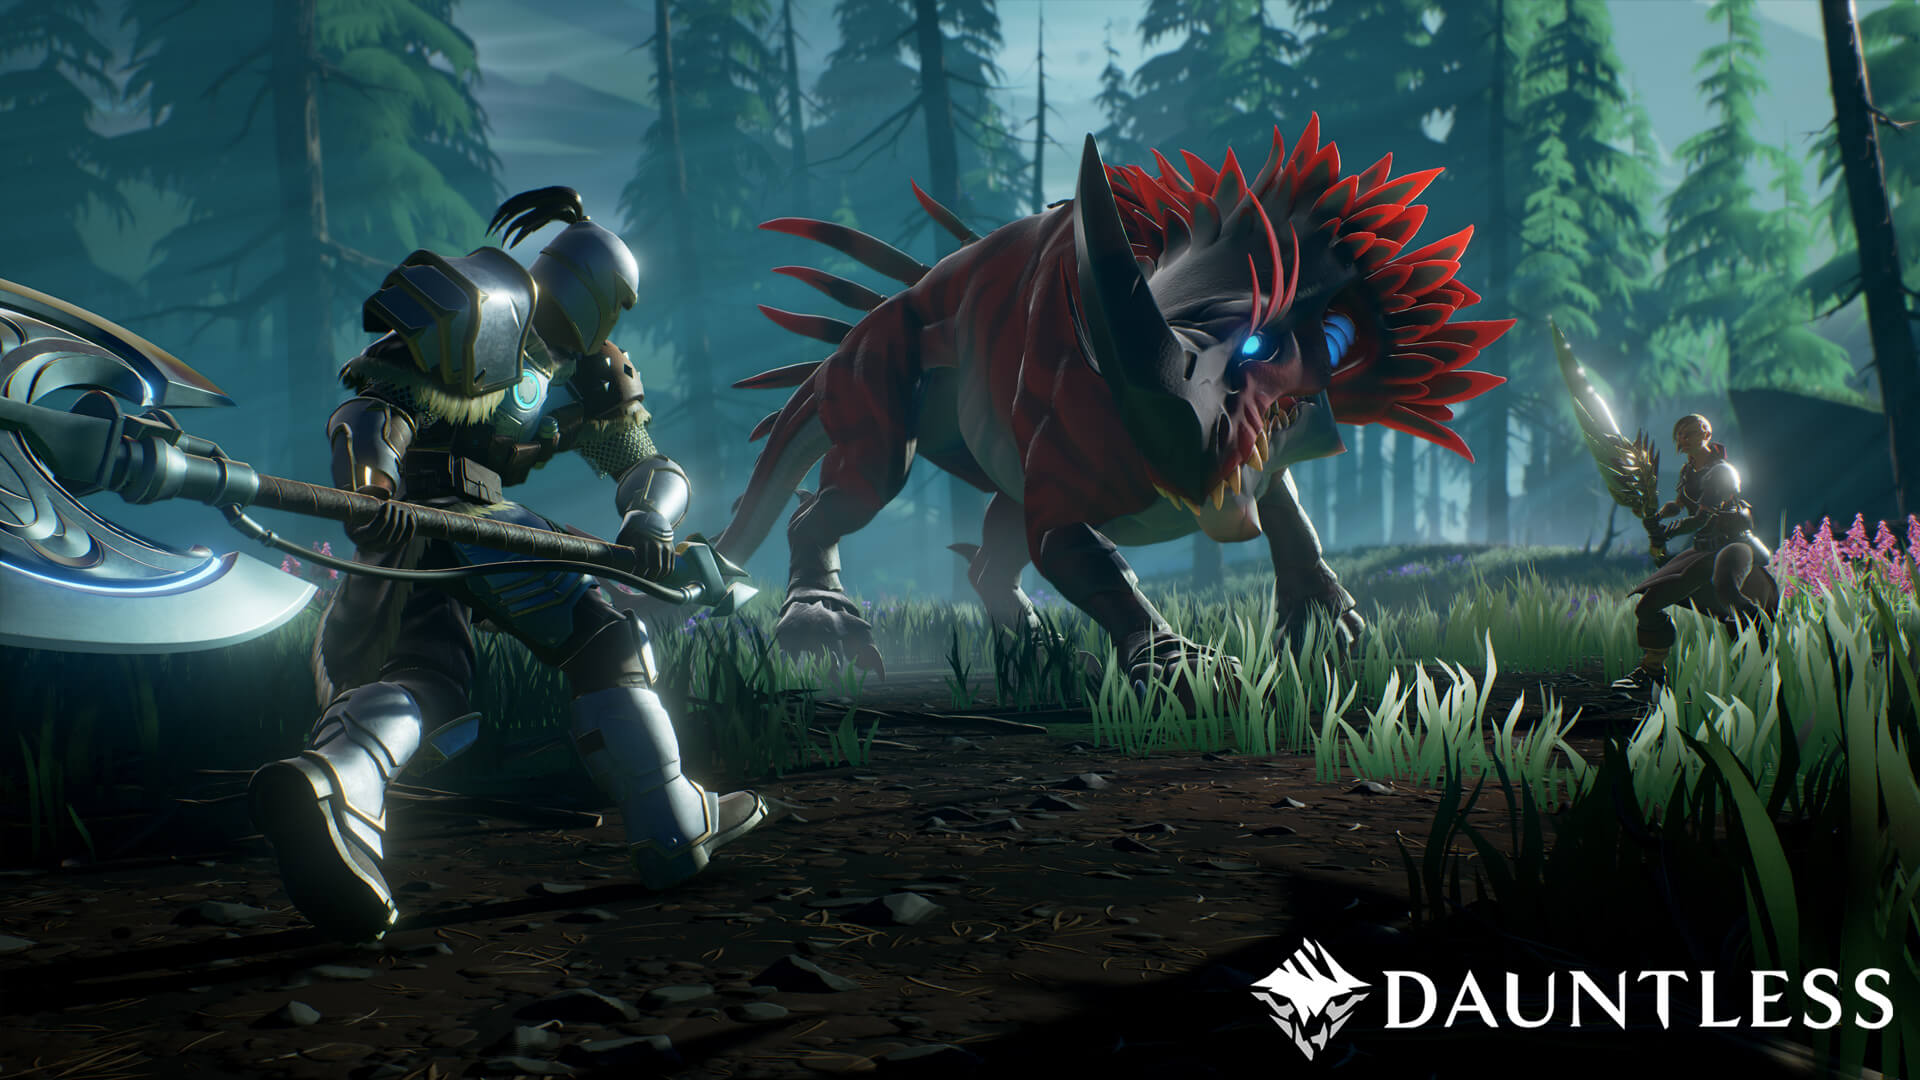 Dauntless download free